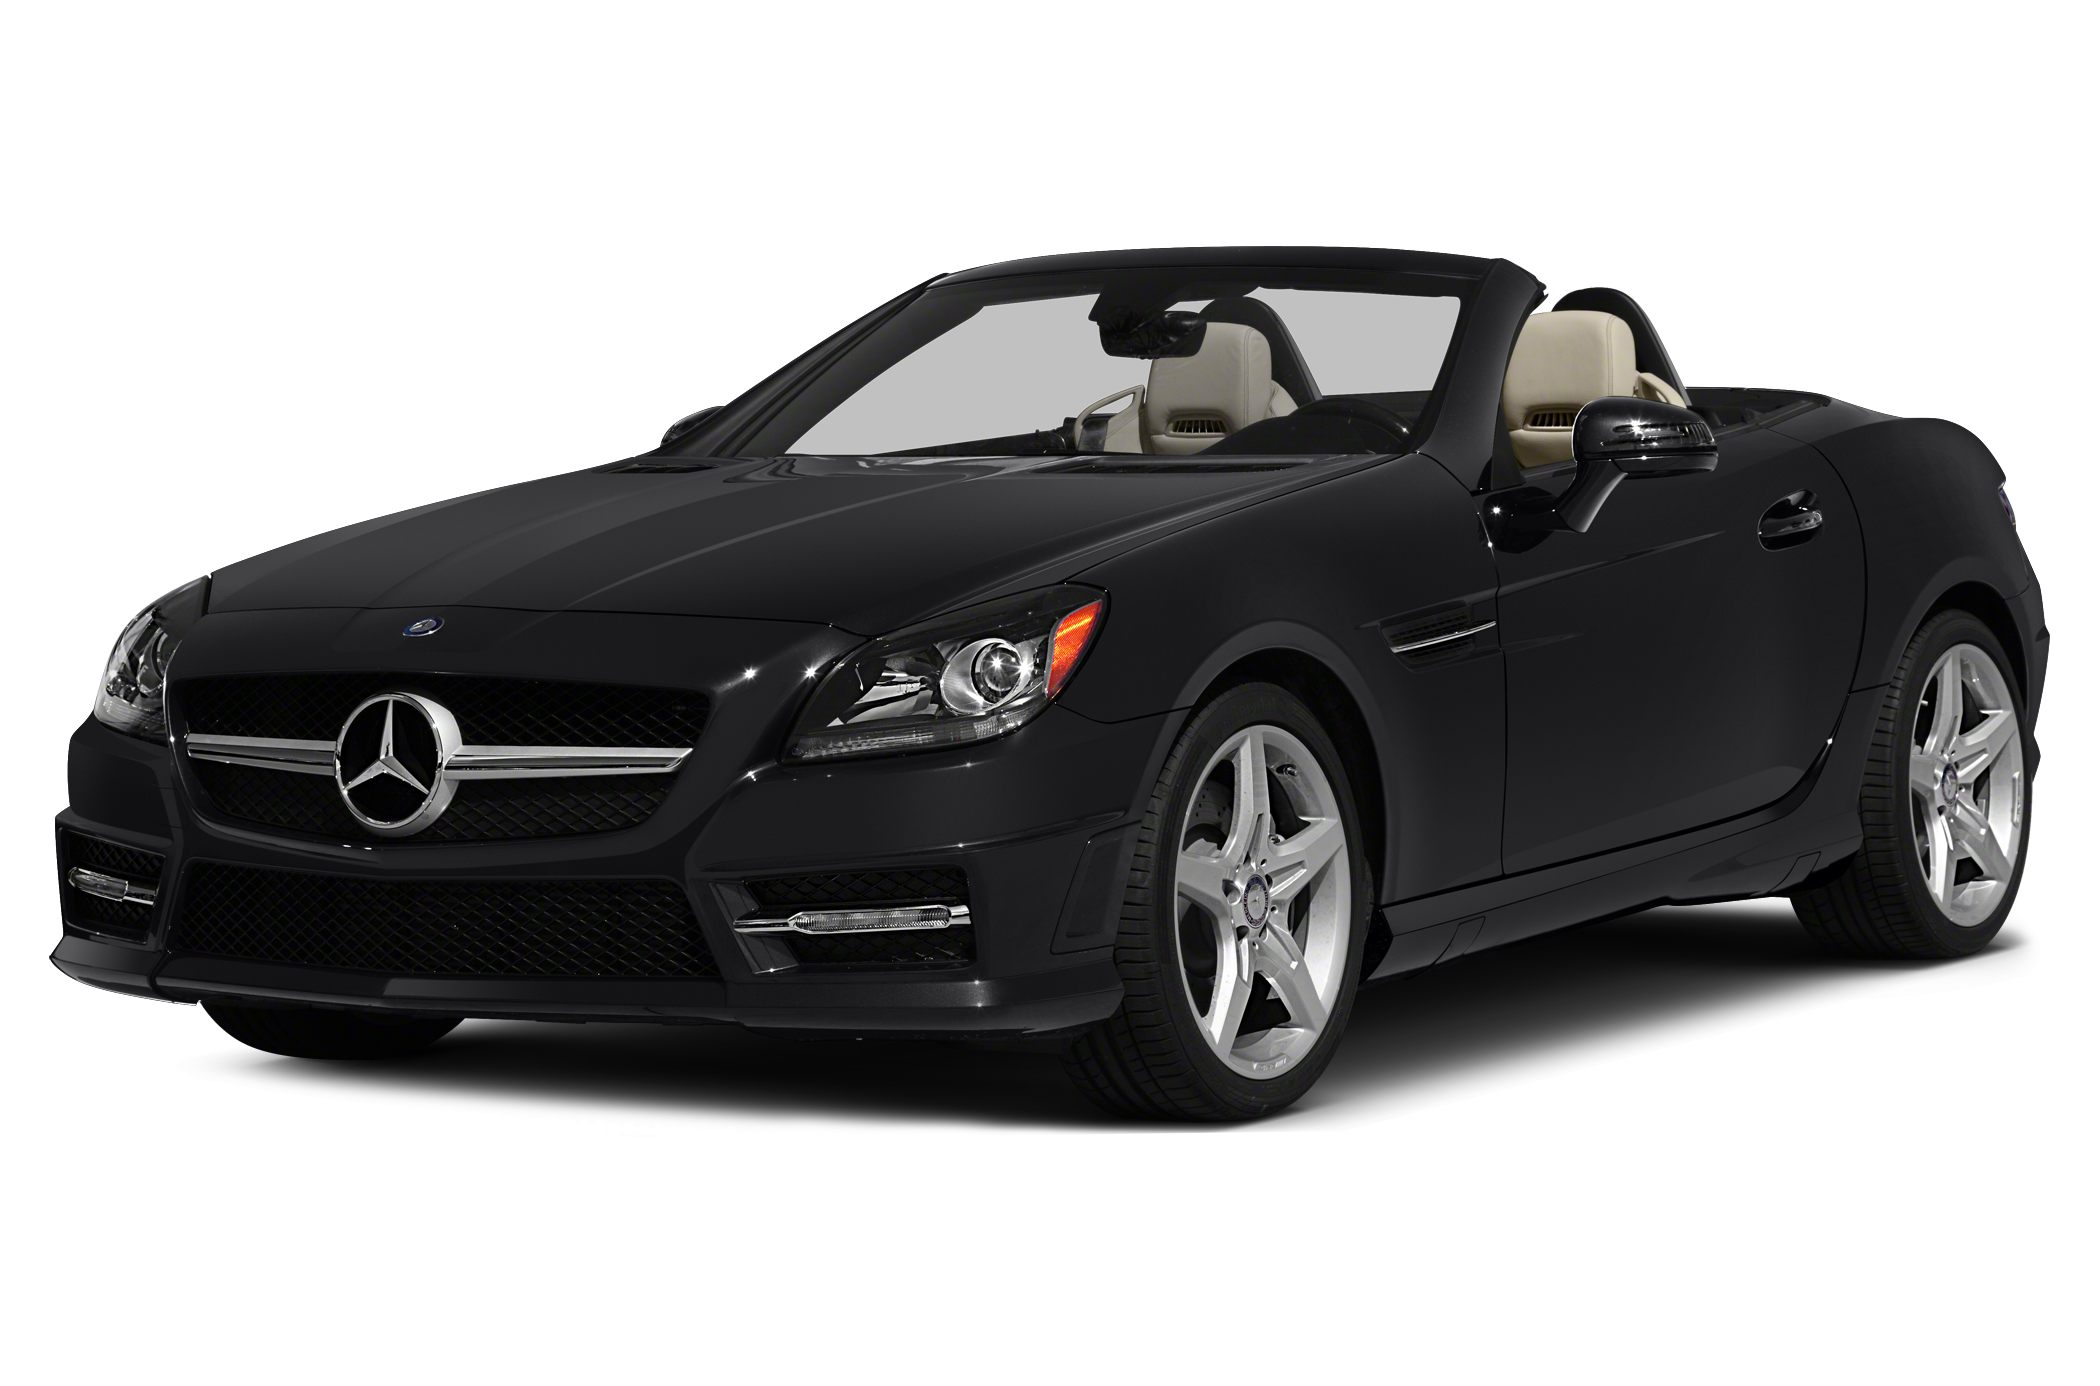 2015 Mercedes-Benz SLK-Class SLK250 Convertible for sale in Atlanta for $56,335 with 29 miles